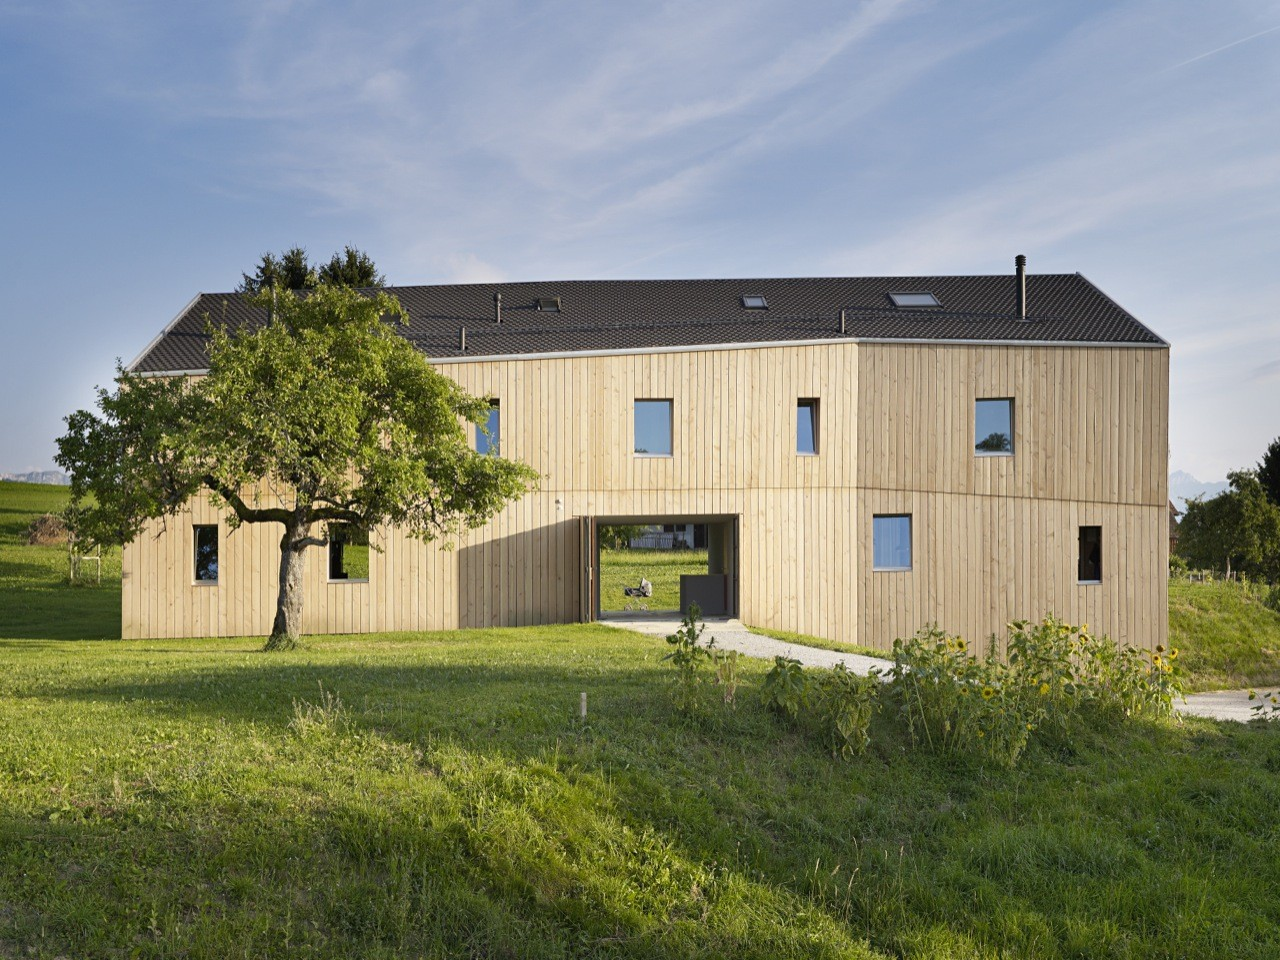 House for two families in Maracon / LOCALARCHITECTURE, Courtesy of LOCALARCHITECTURE